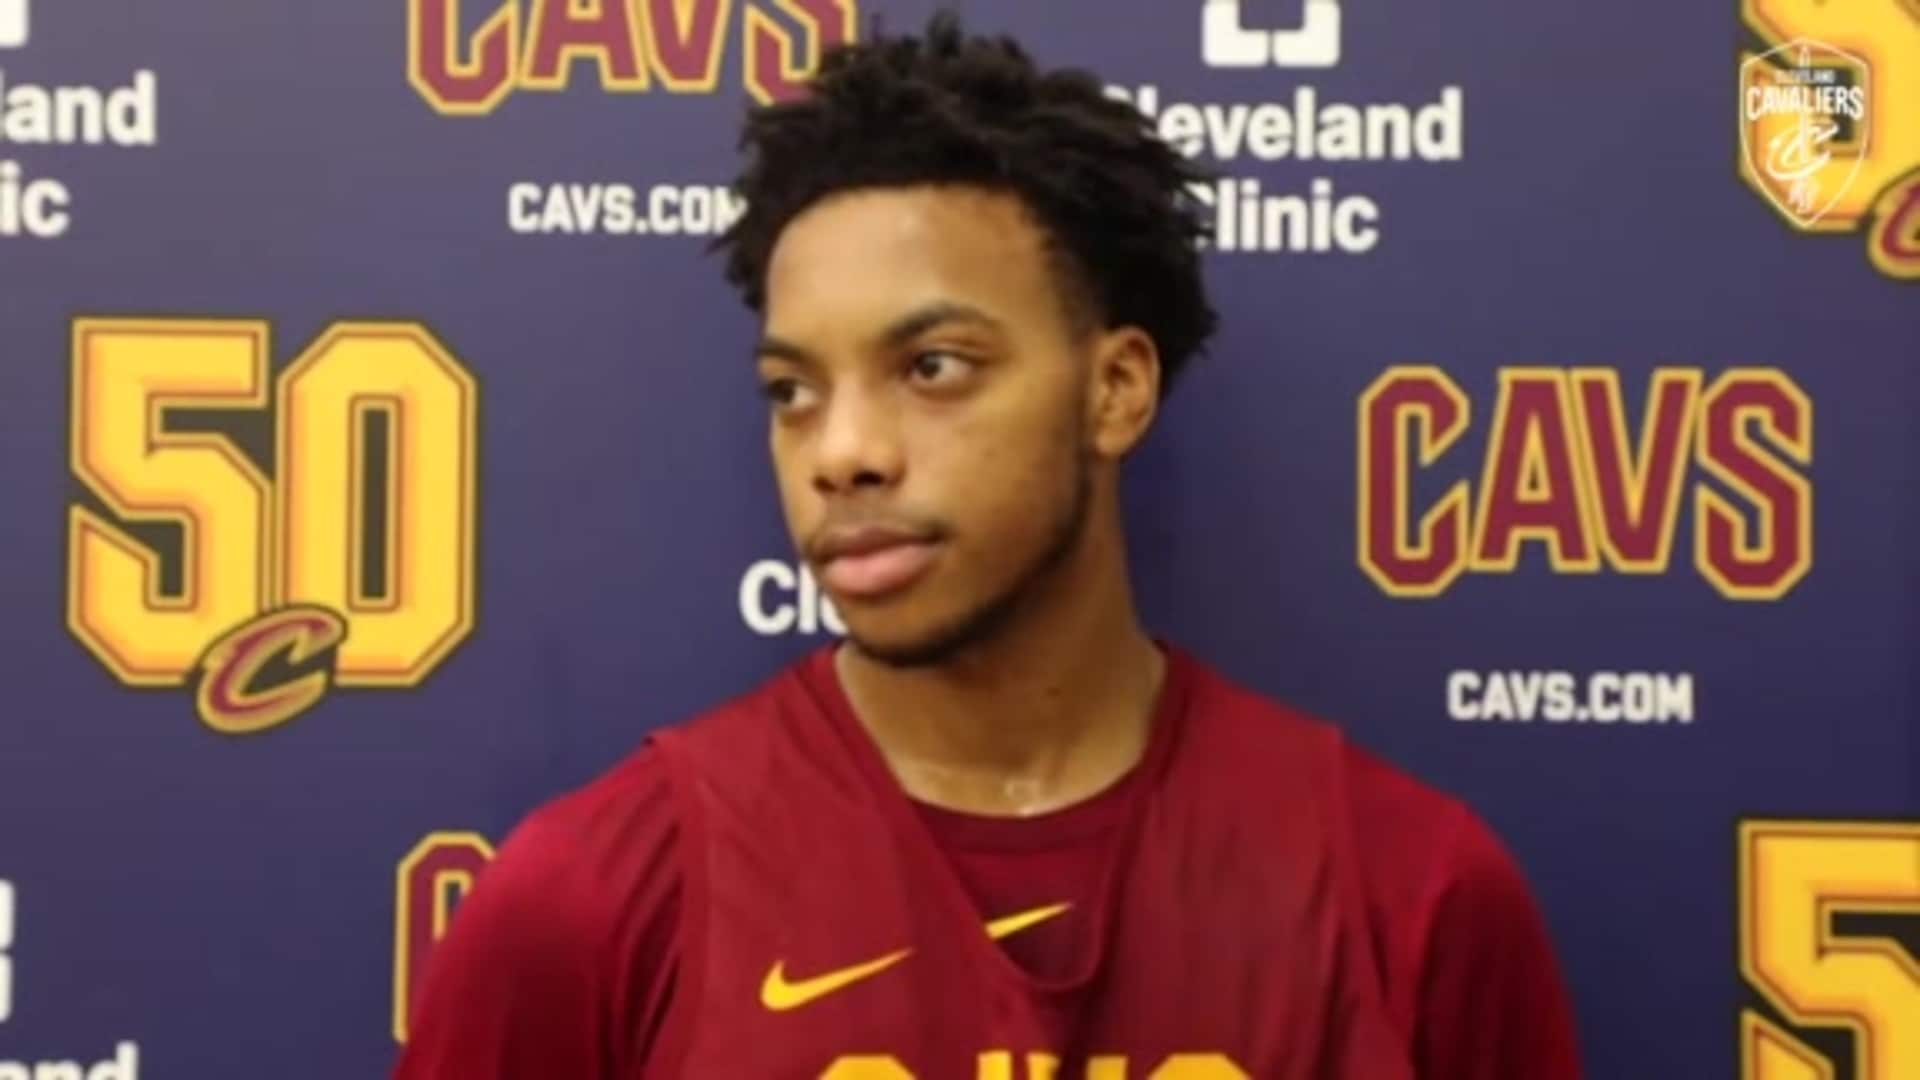 Cavs vs. Magic Practice: Darius Garland